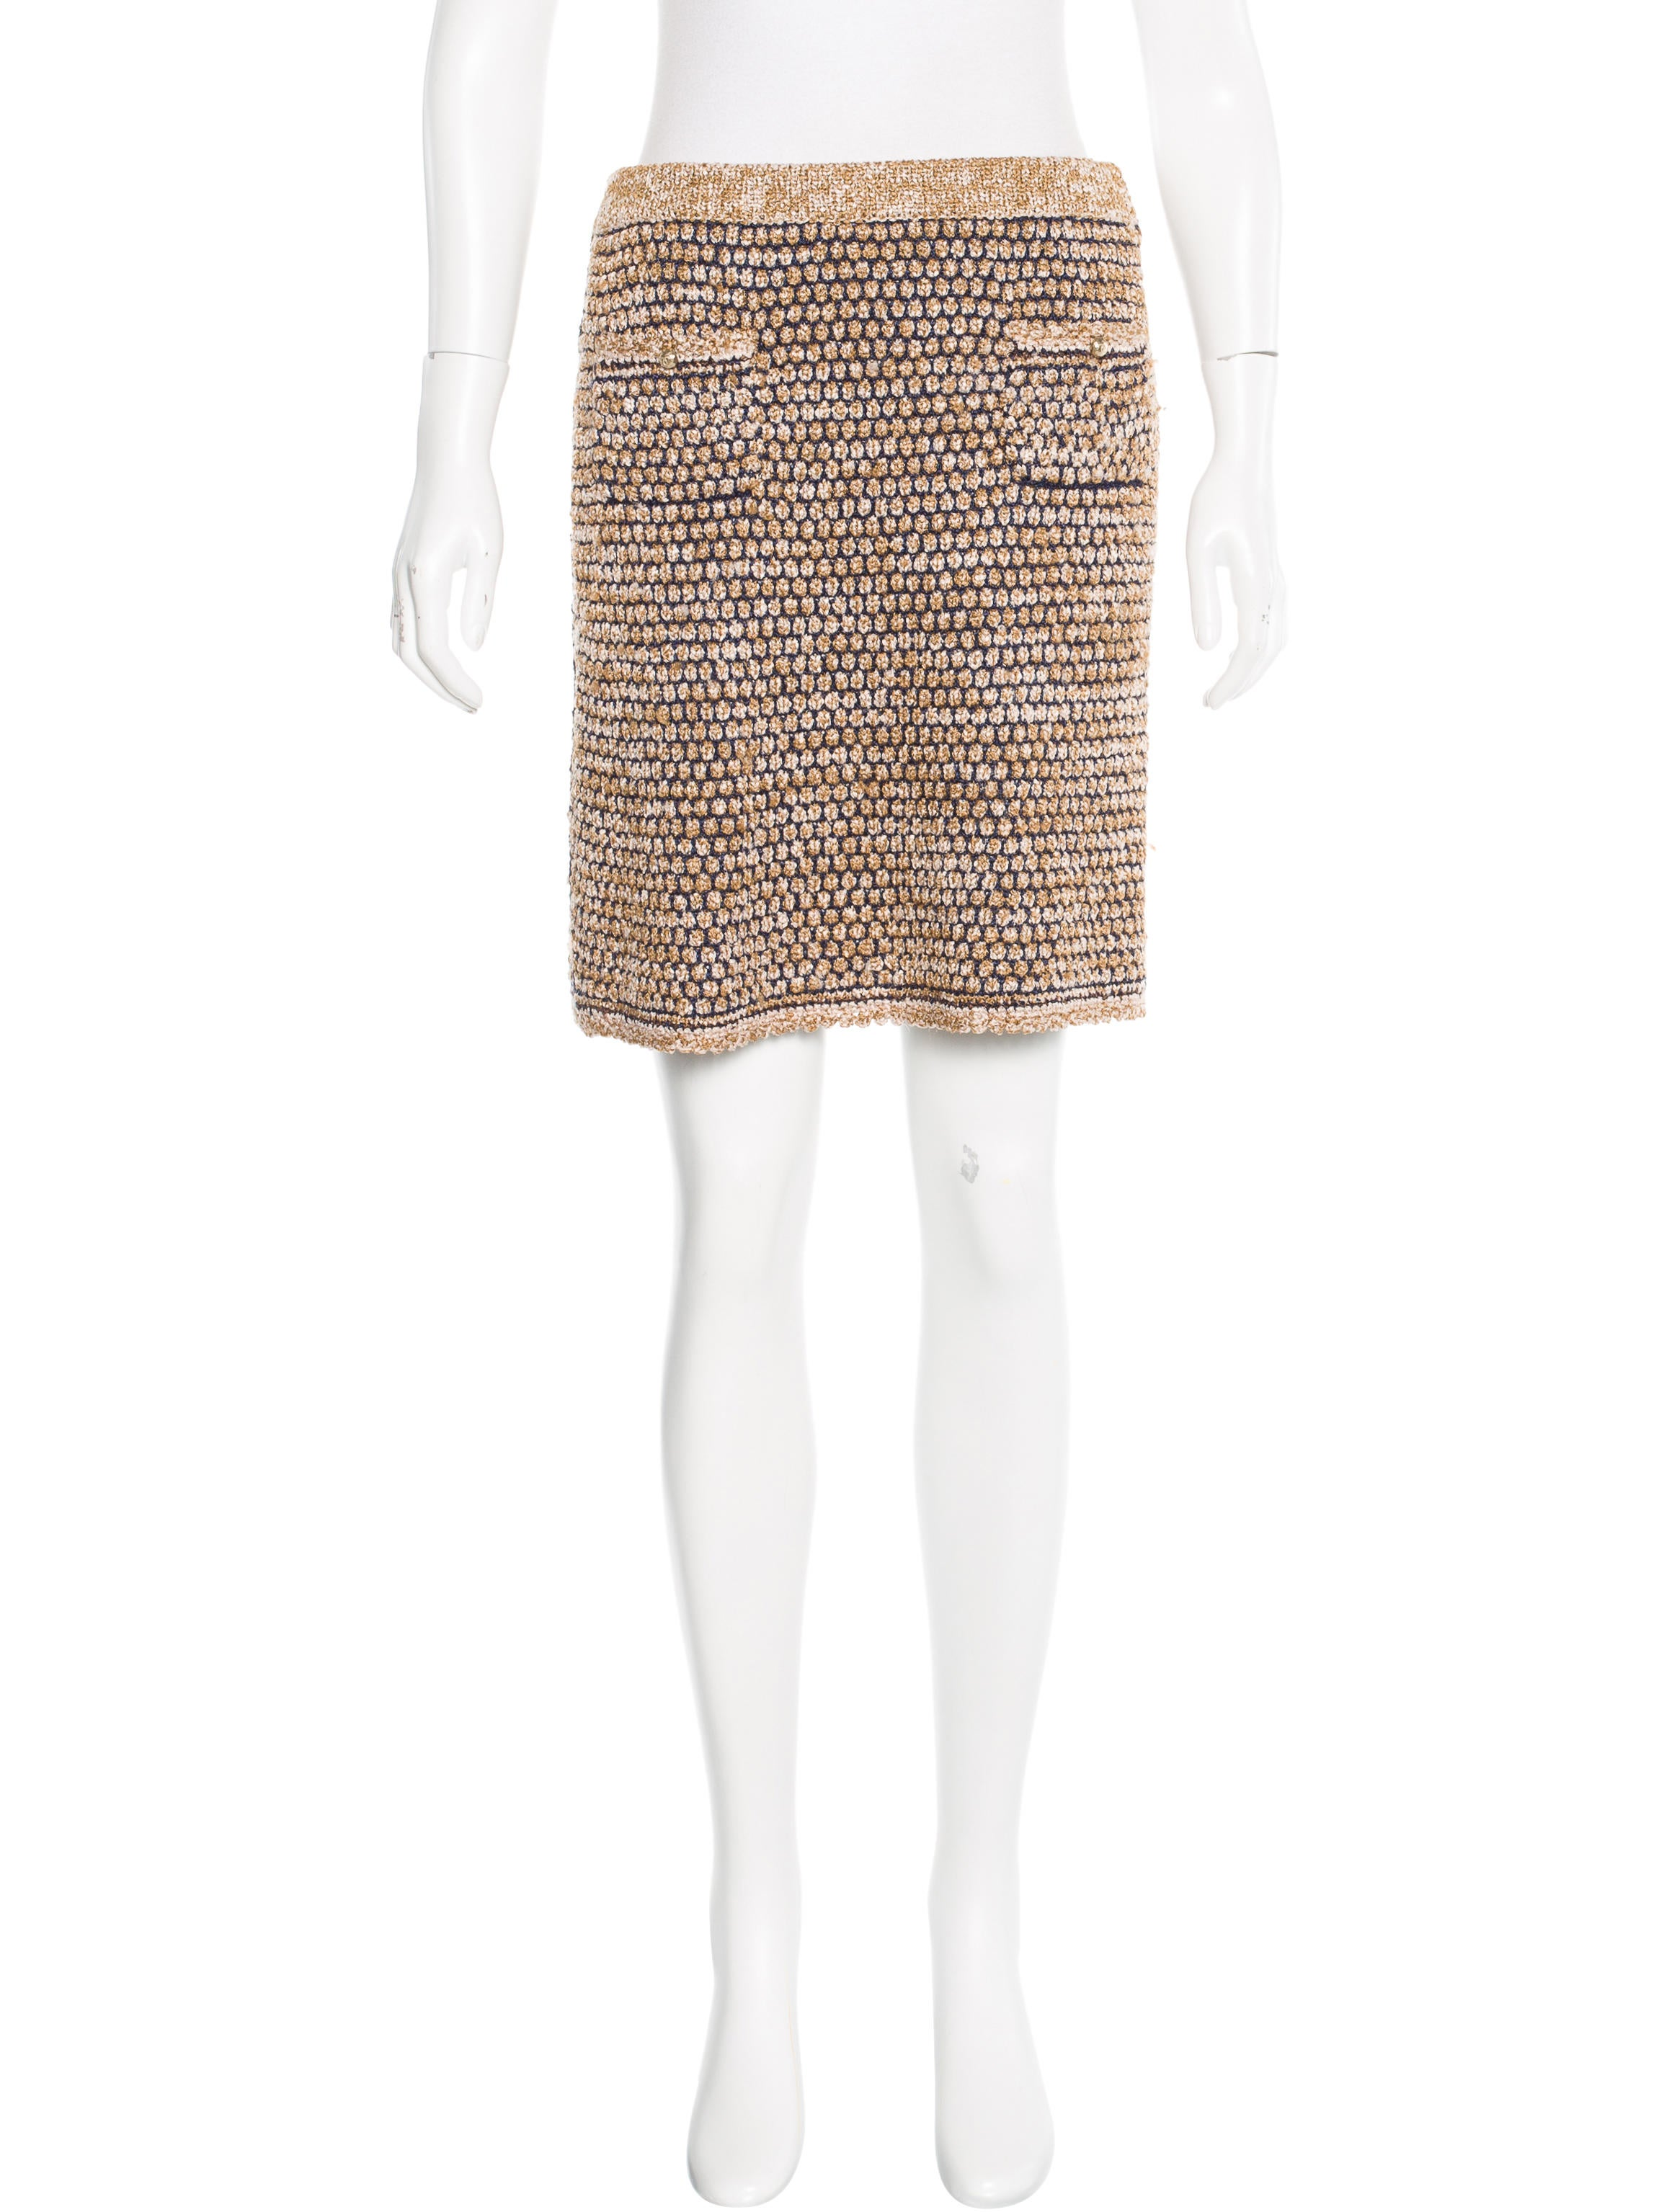 Chanel Knit Pencil Skirt - Clothing - CHA142561 | The RealReal